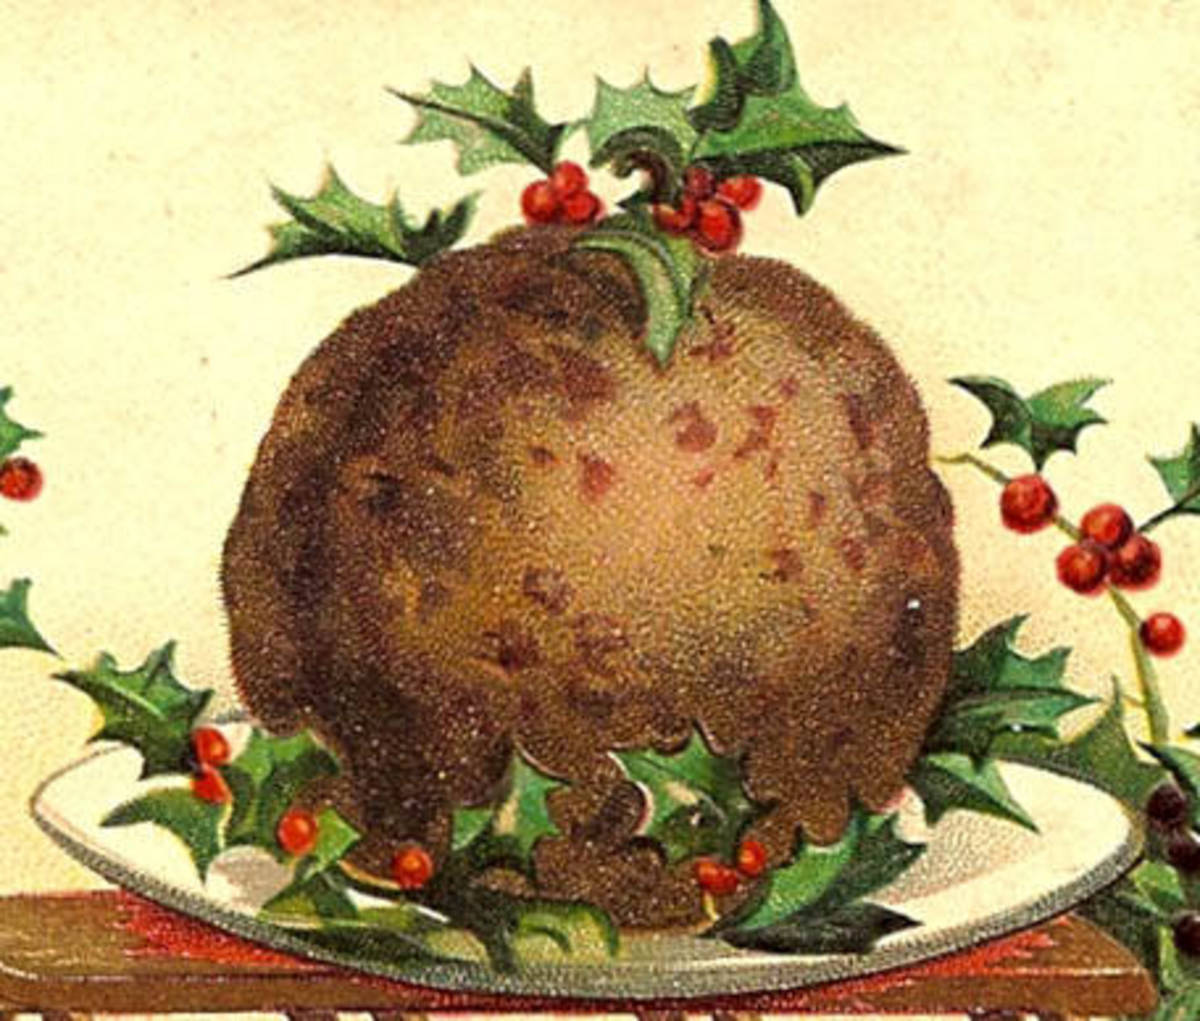 The history of both savoury and sweet  puddings from Medieval times to present.